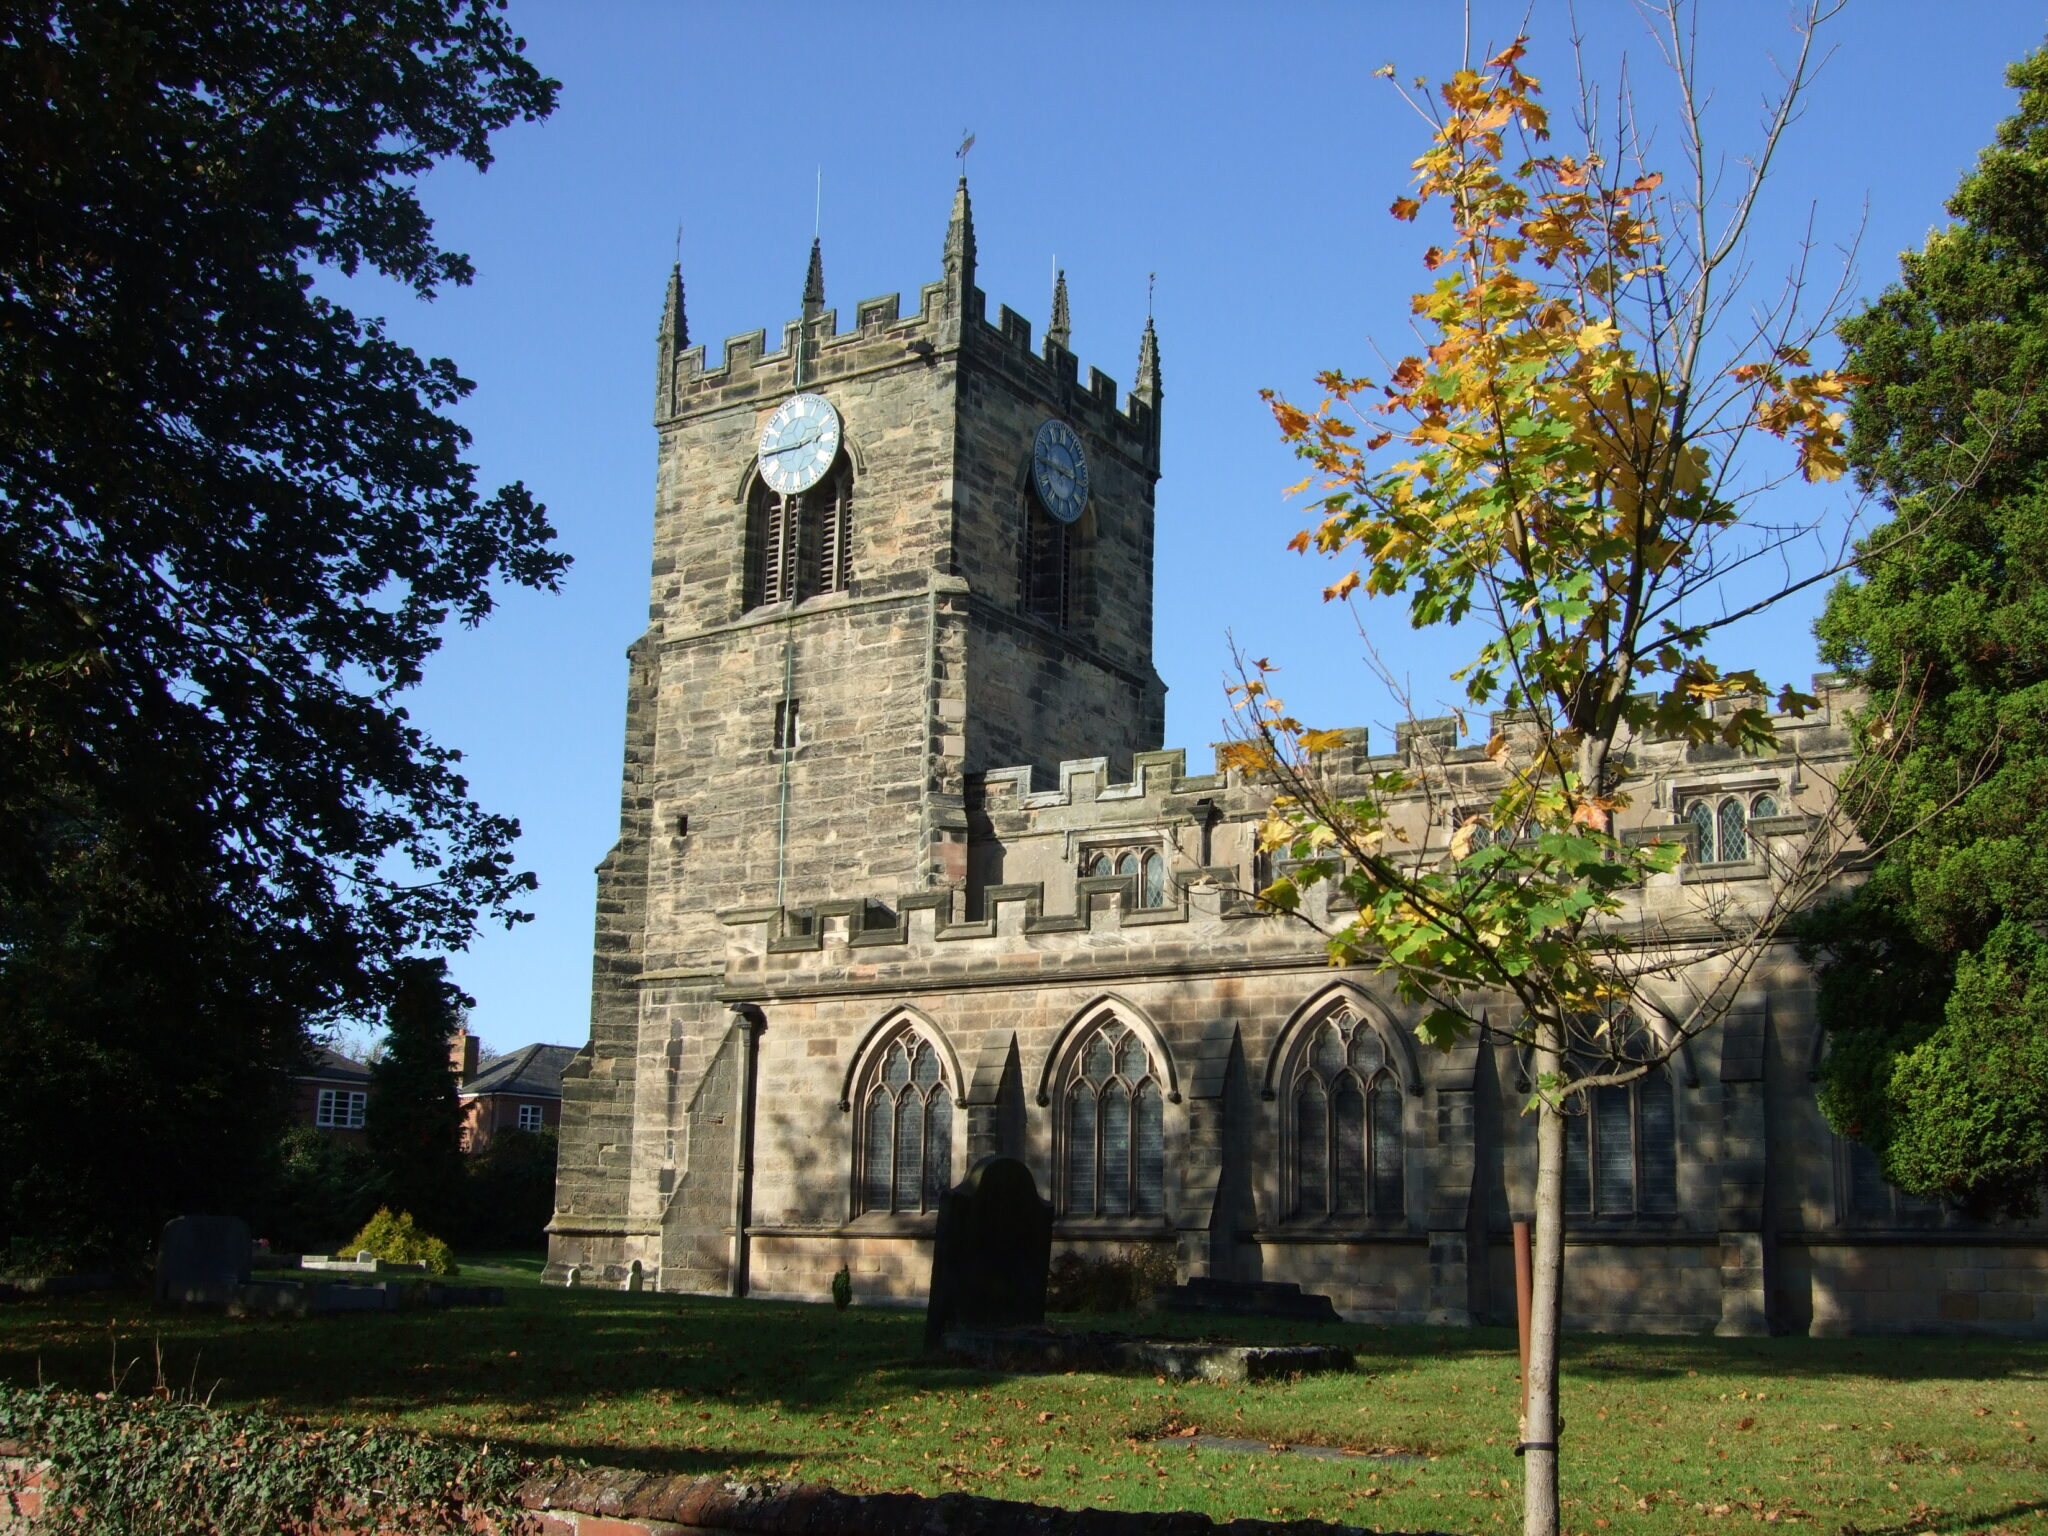 Image of St James' Church.